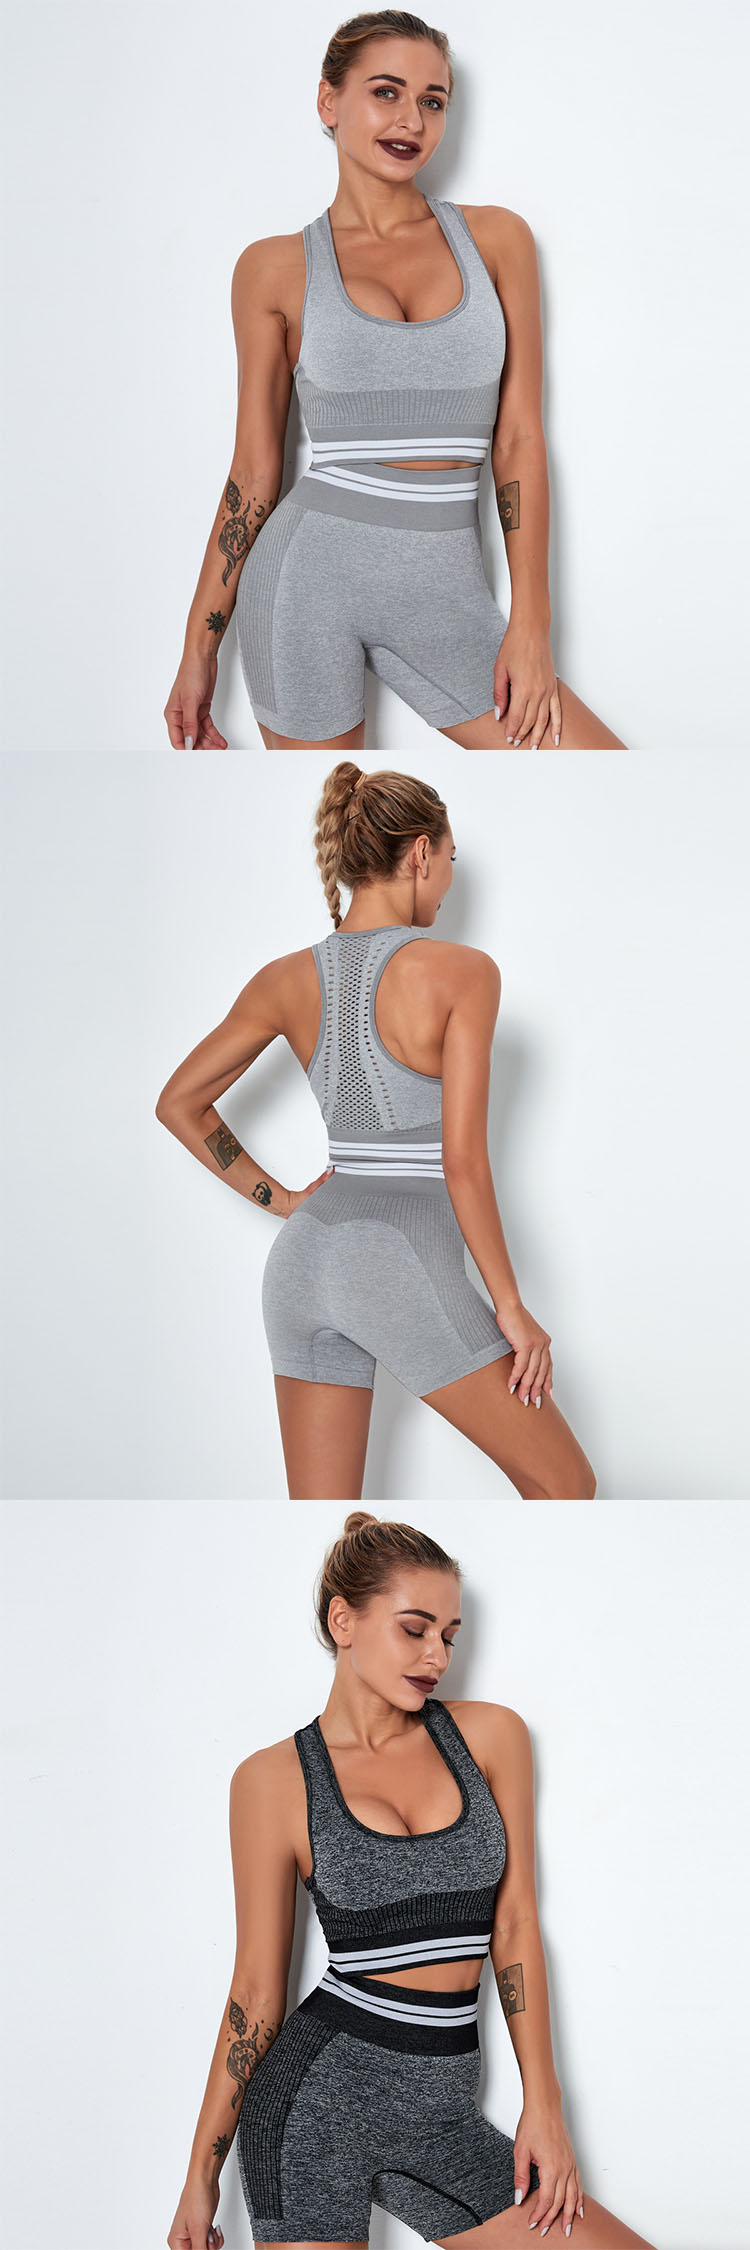 Using sports fabric, comfortable and breathable. Quick-drying, wicking away sweat, non-sticky when exercising.